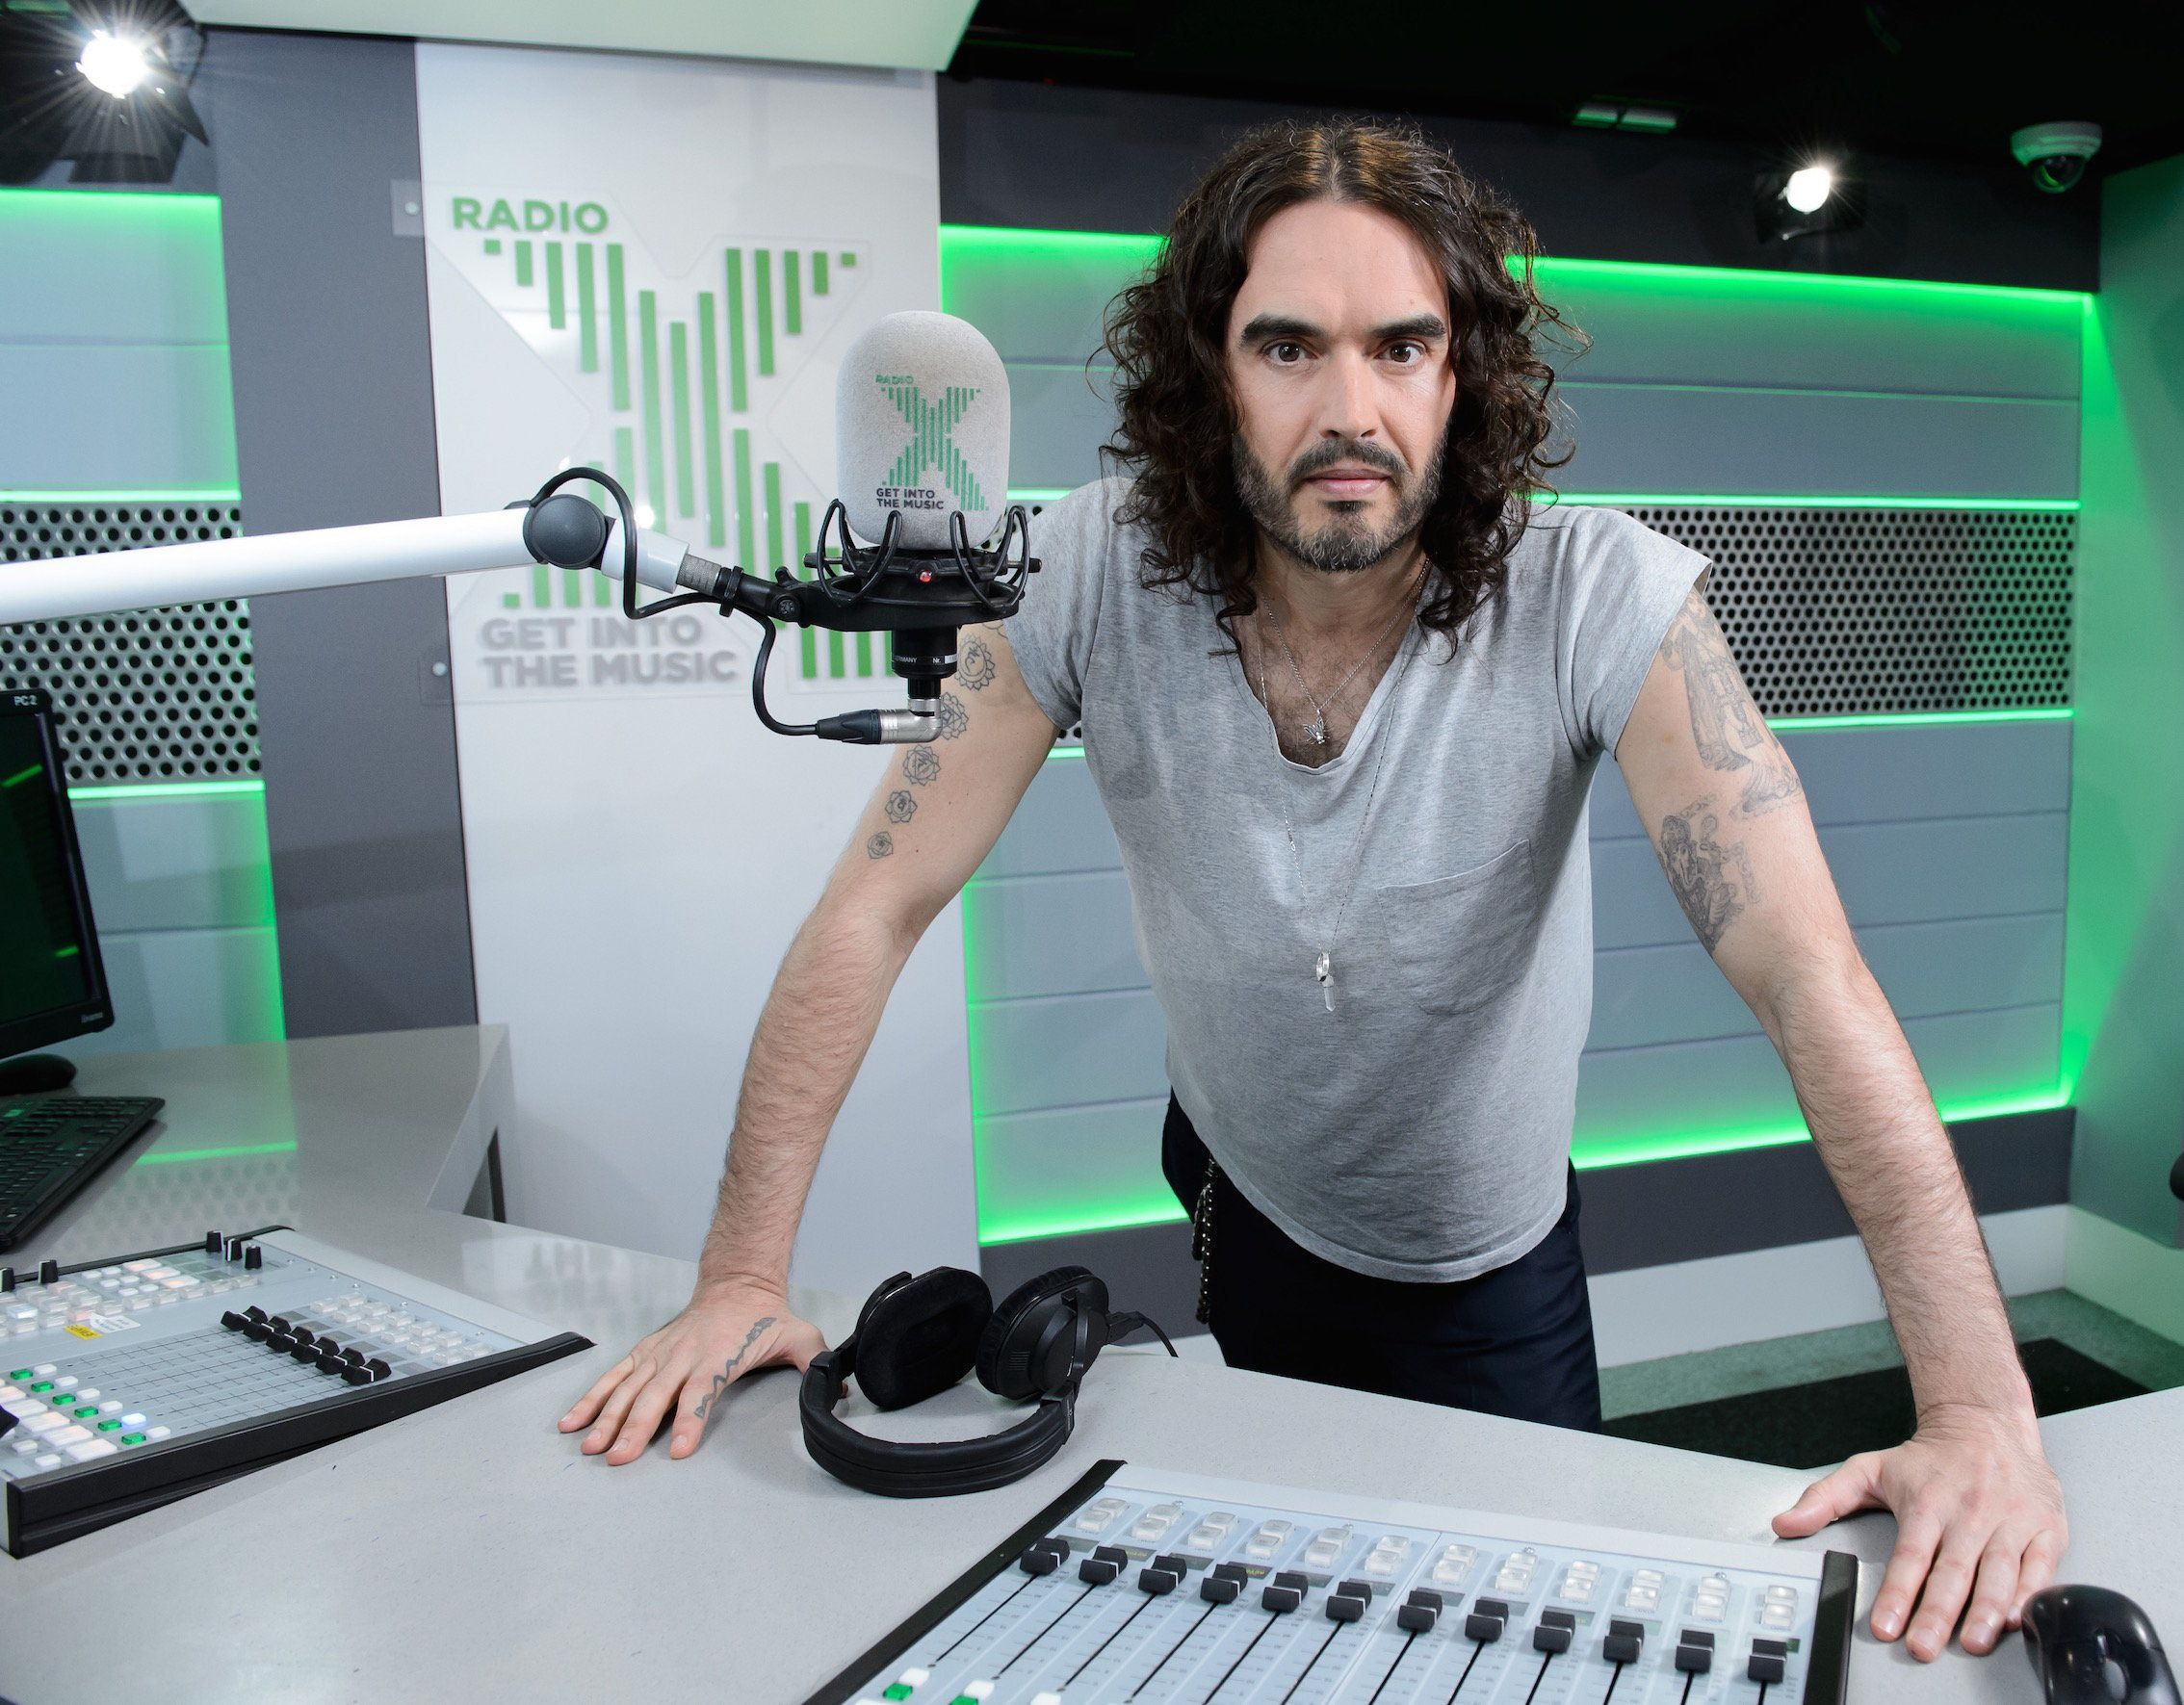 Ofcom Rules On Fresh Russell Brand Radio Controversy